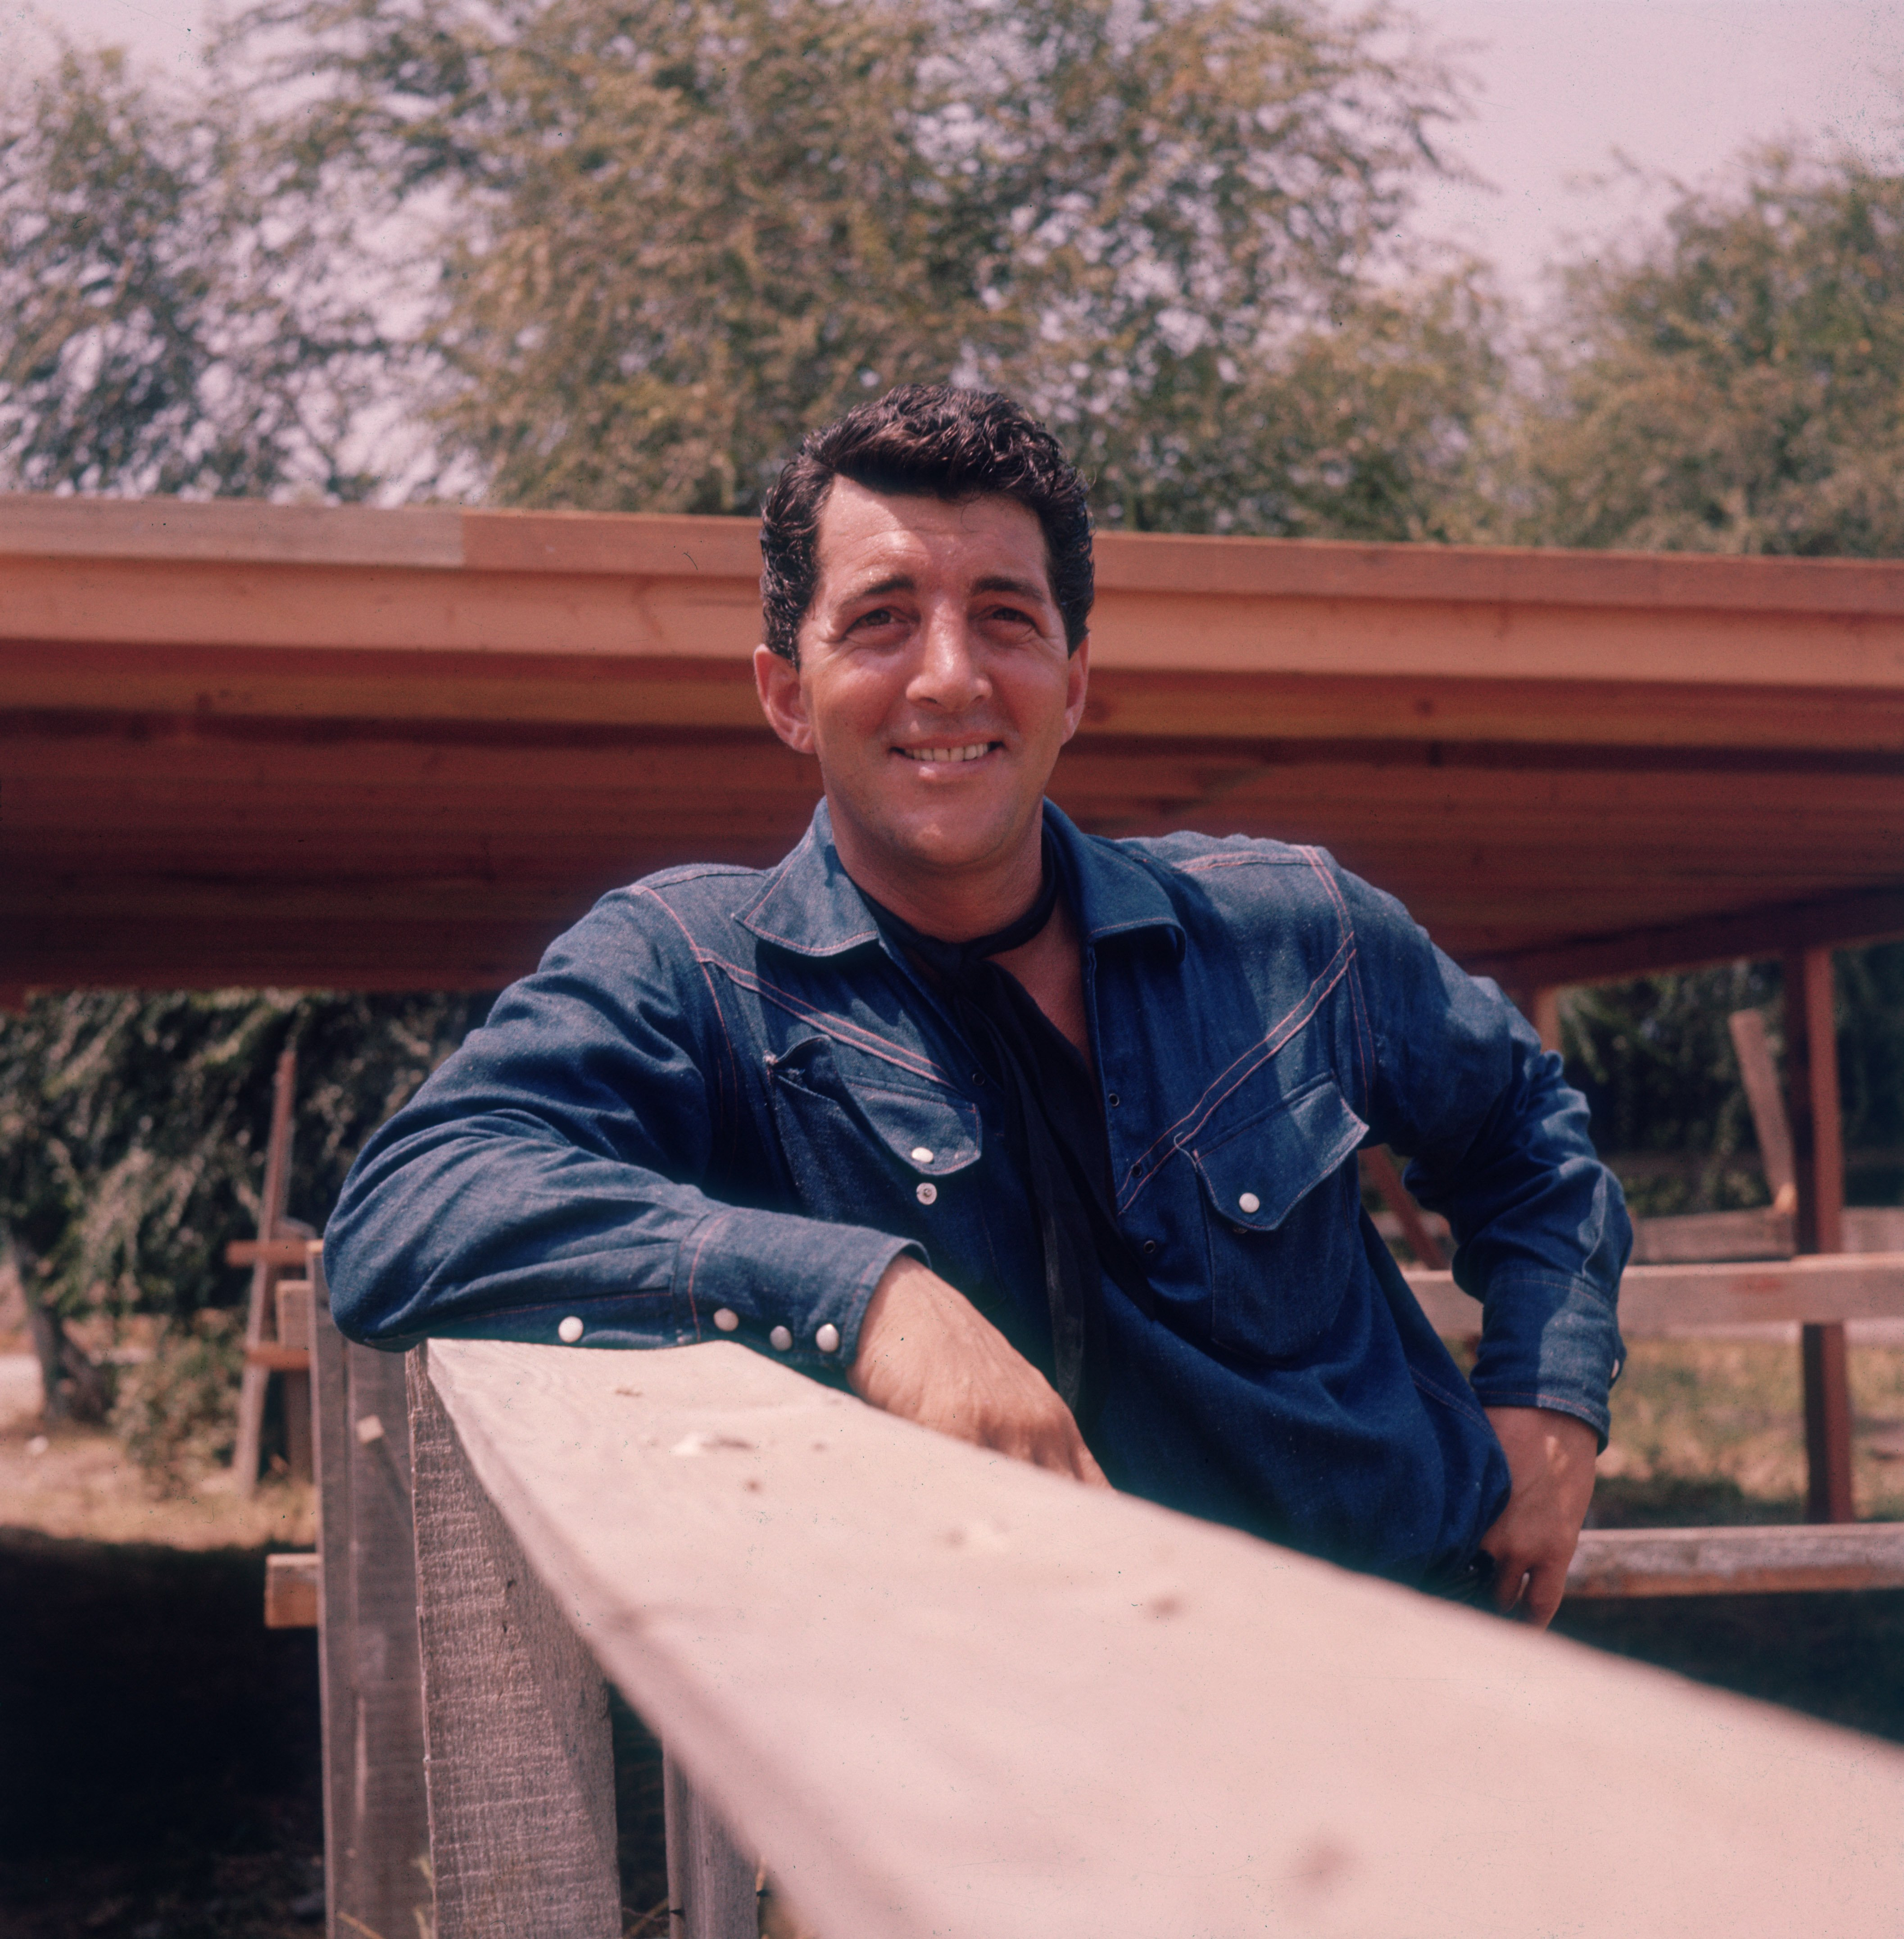 American actor and singer Dean Martin (1917 - 1995) on his ranch, circa 1965. | Photo: GettyImaes